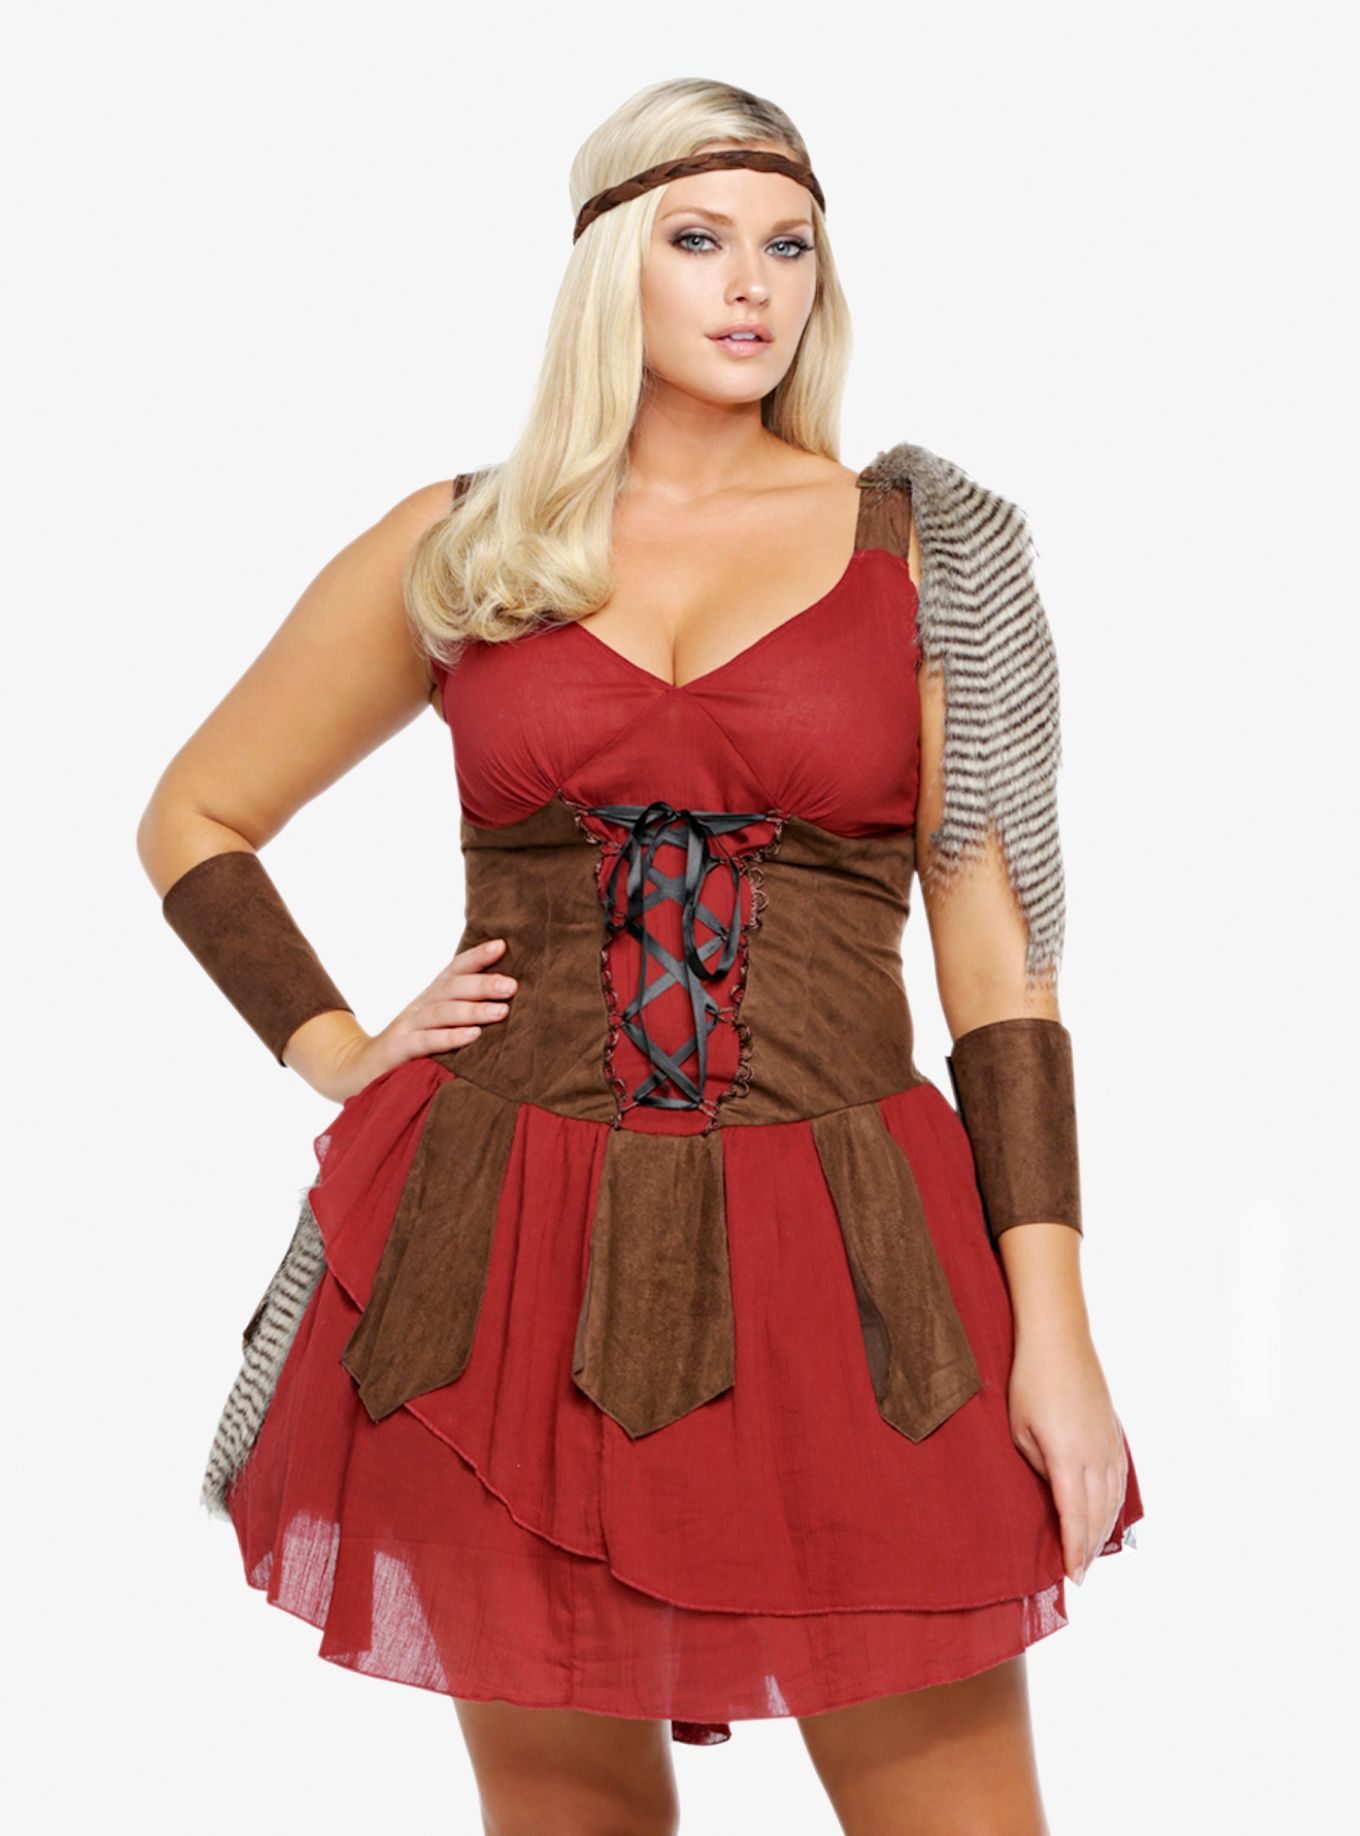 Leg Avenue Deadly Huntress Costume Dress Torrid Full